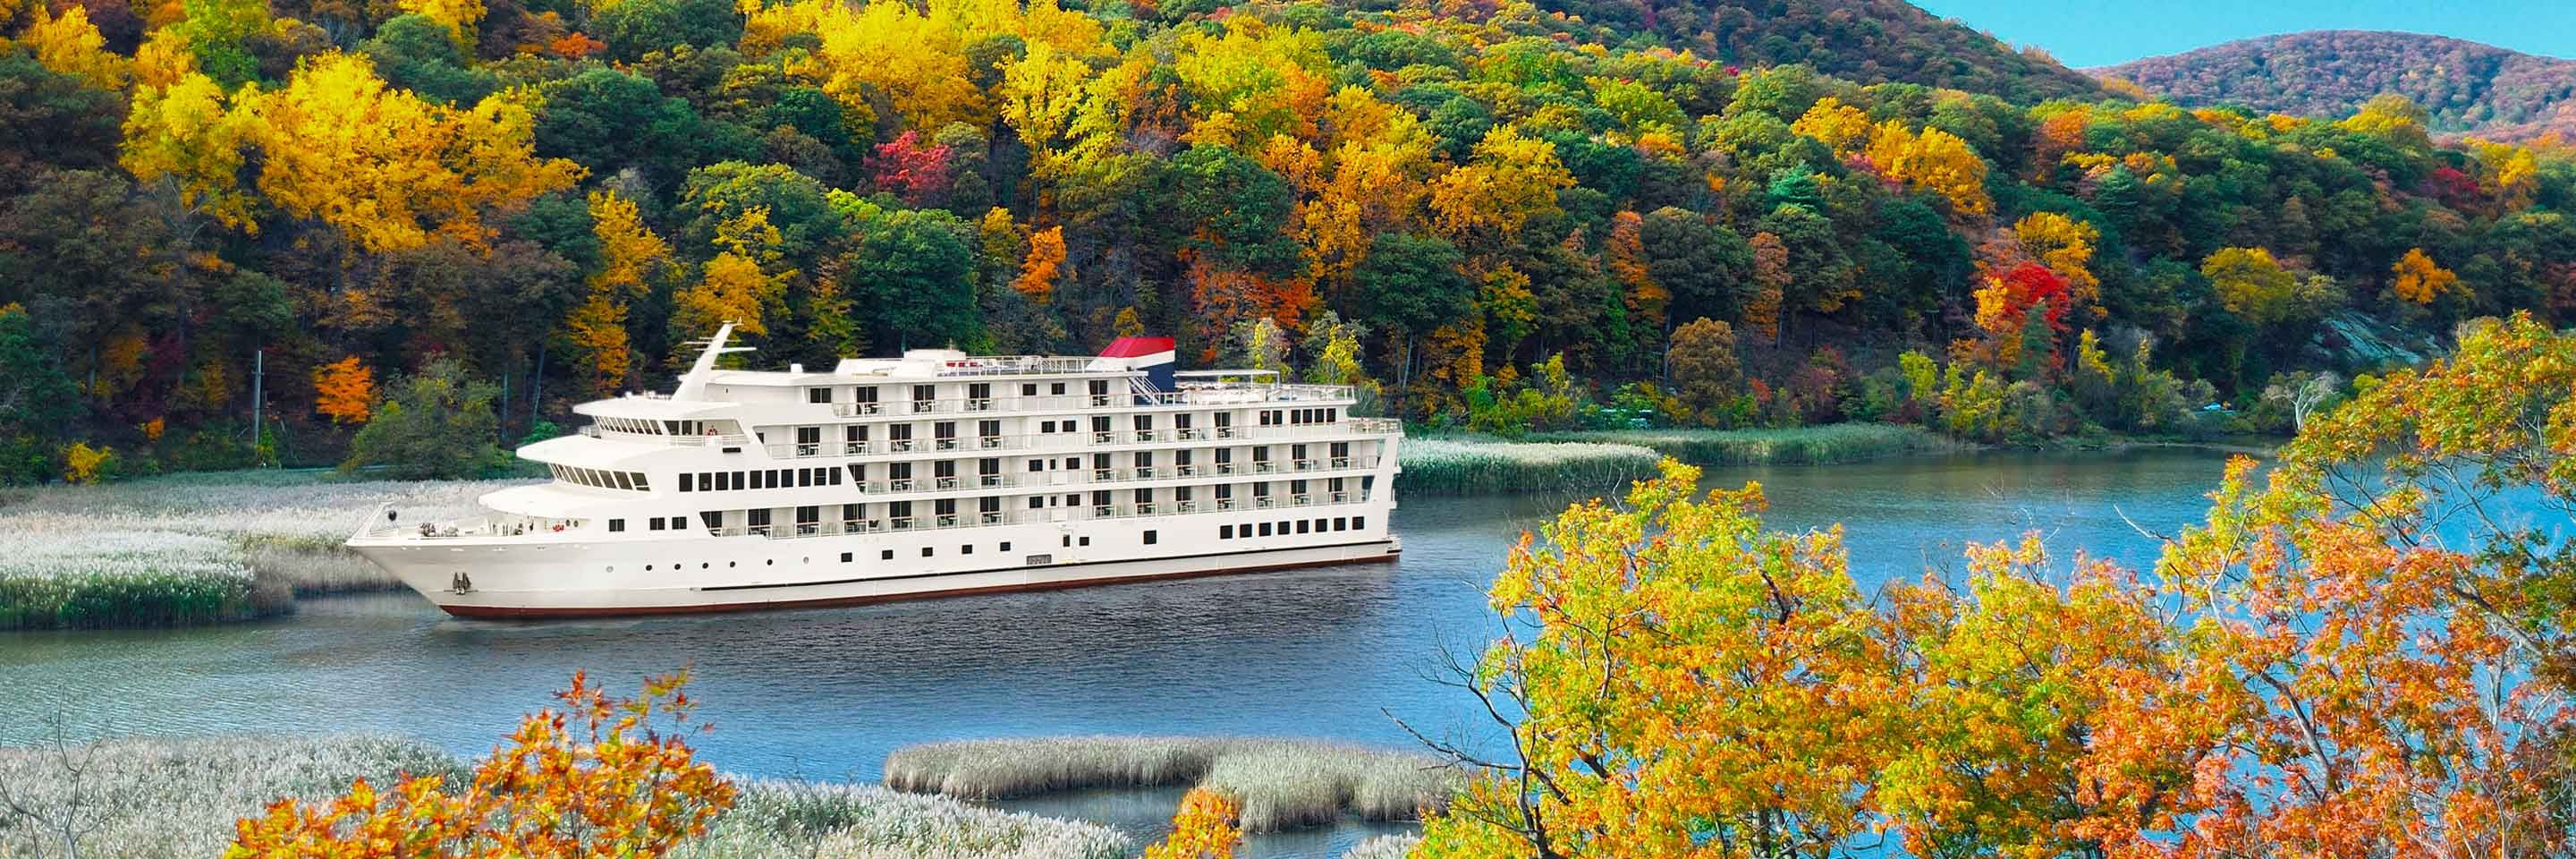 Hudson River Fall Foliage Cruise from NYC  American Cruise Lines